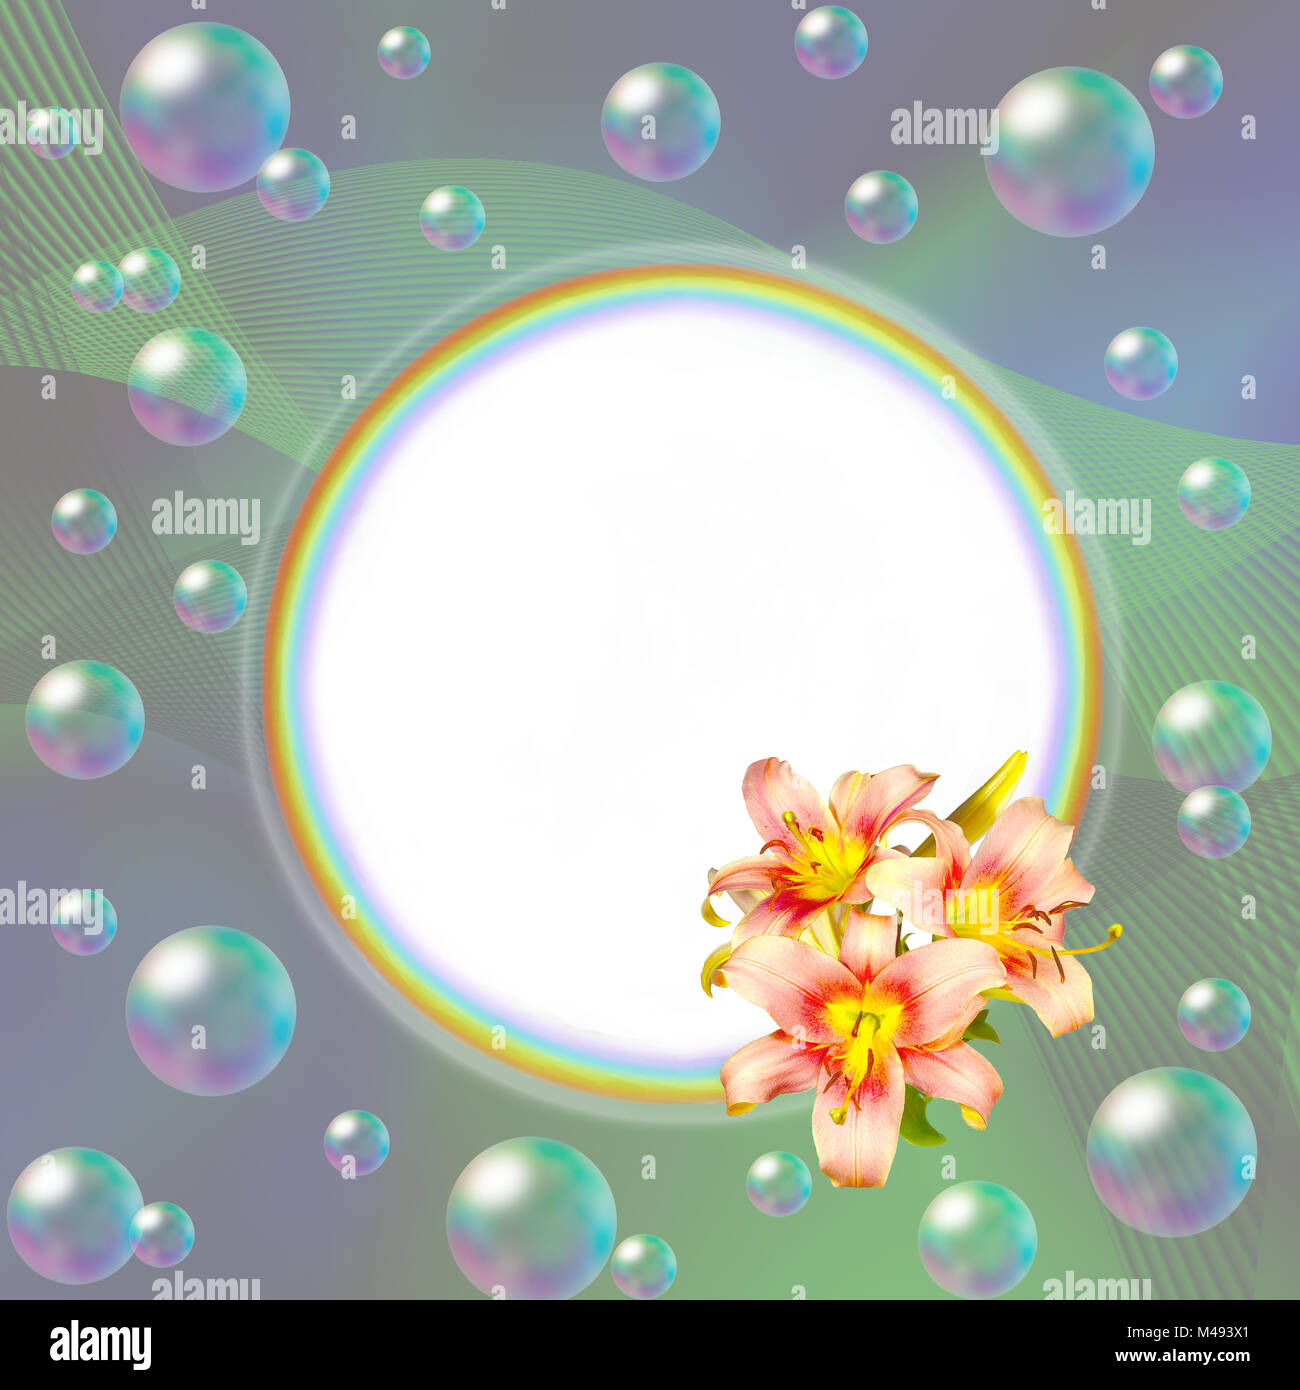 Round rainbow frame decorated with pink lilies and bubbles - Stock Image